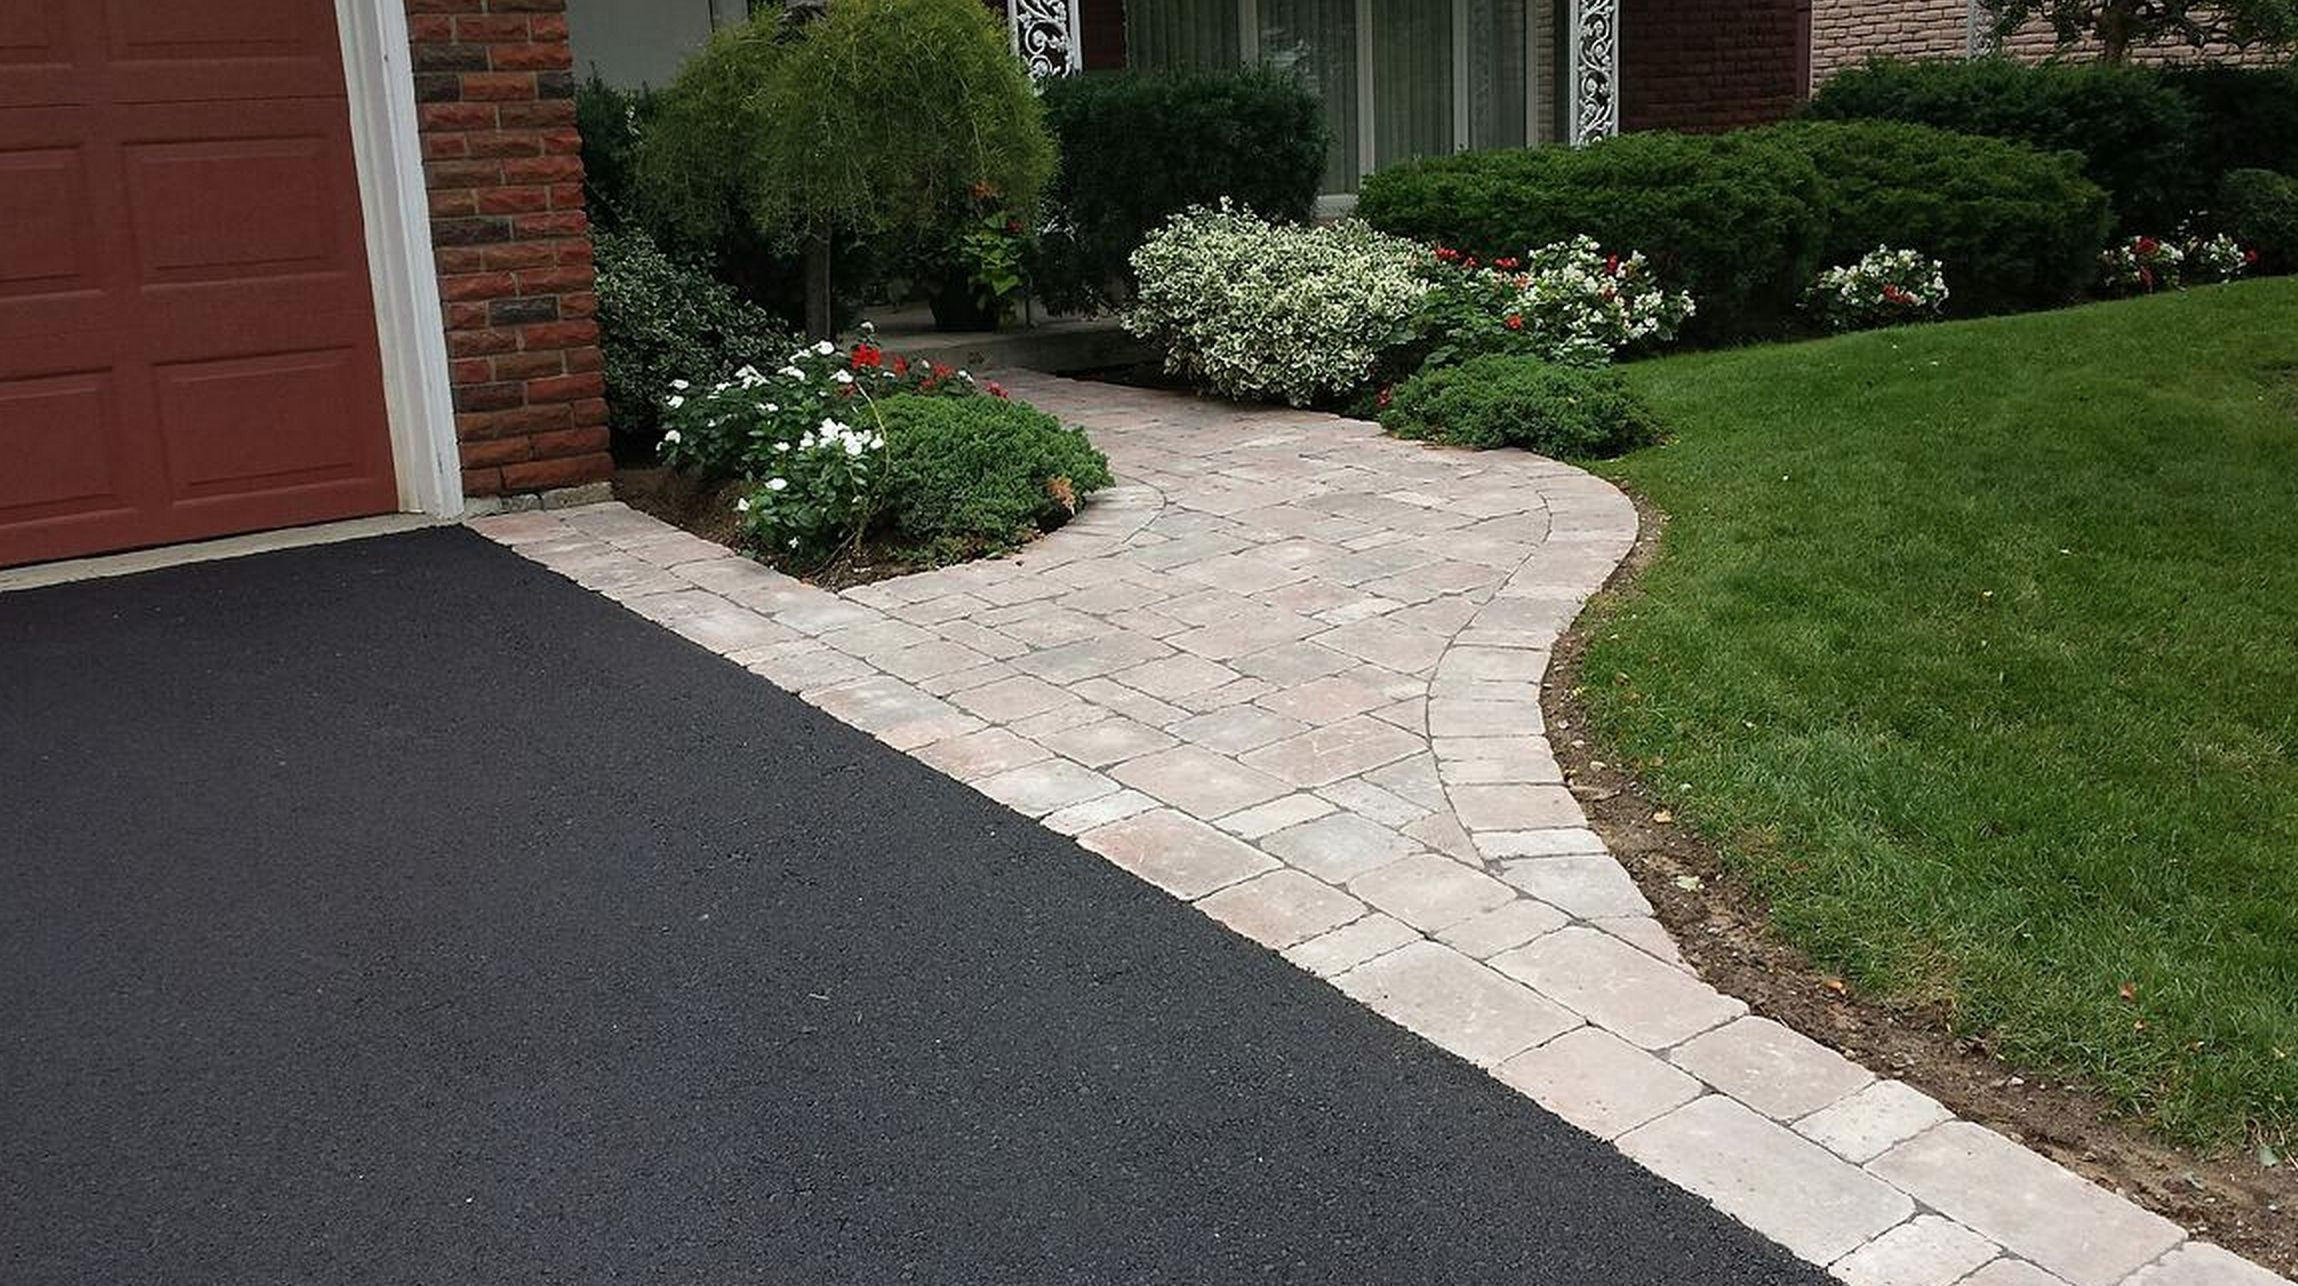 Image Result For Asphalt Driveway With Interlock Border